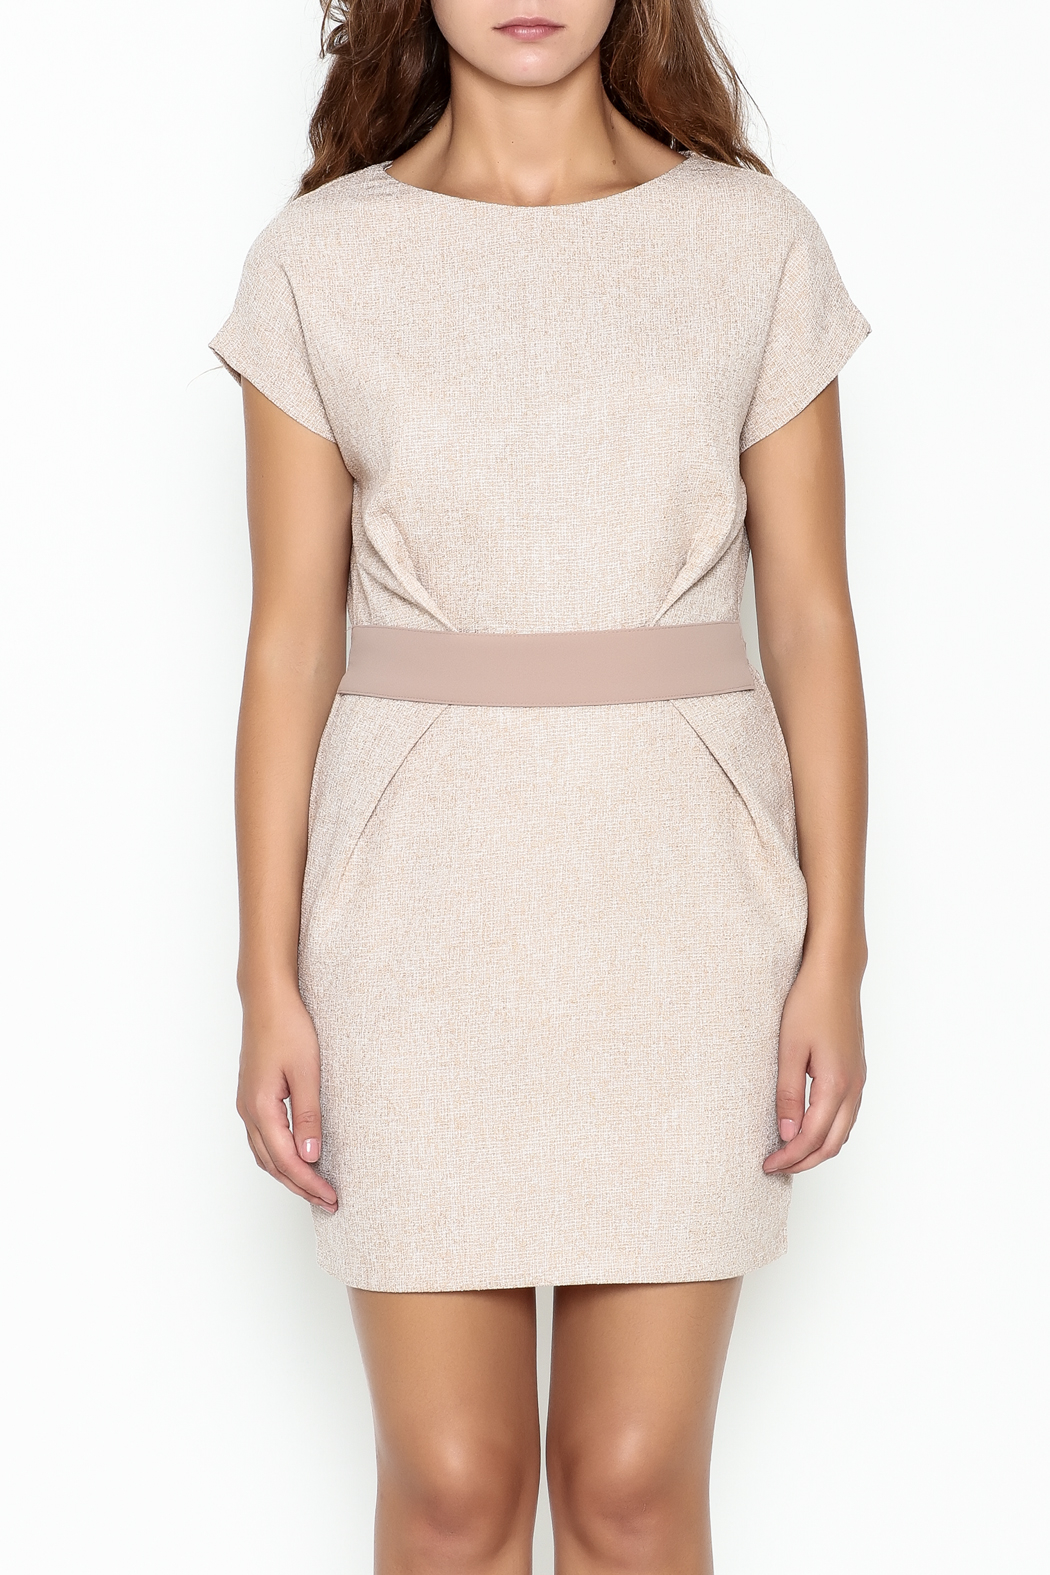 Pinkyotto Waist Pleated Dress - Front Full Image